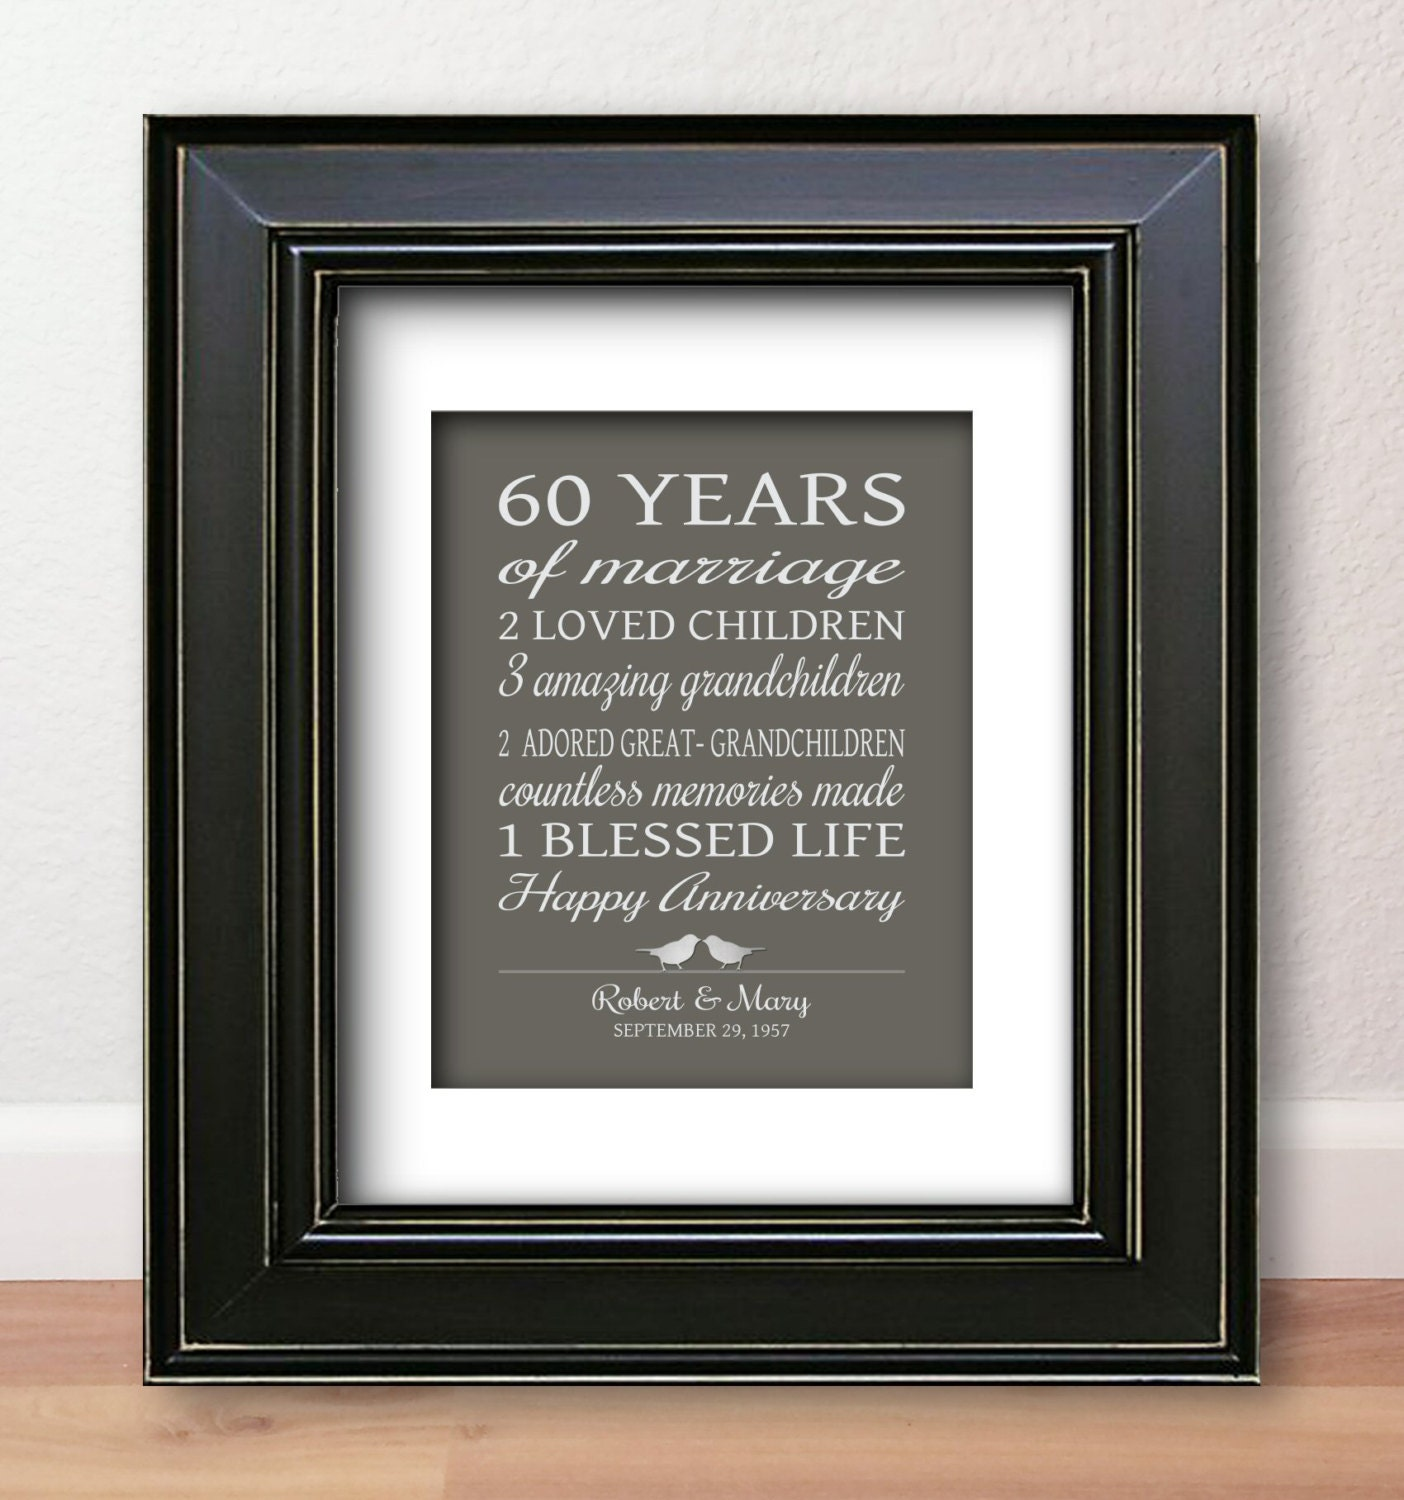 Gifts For 60th Wedding Anniversary: 60th Anniversary Gift For Parents 60 Years Married Sign